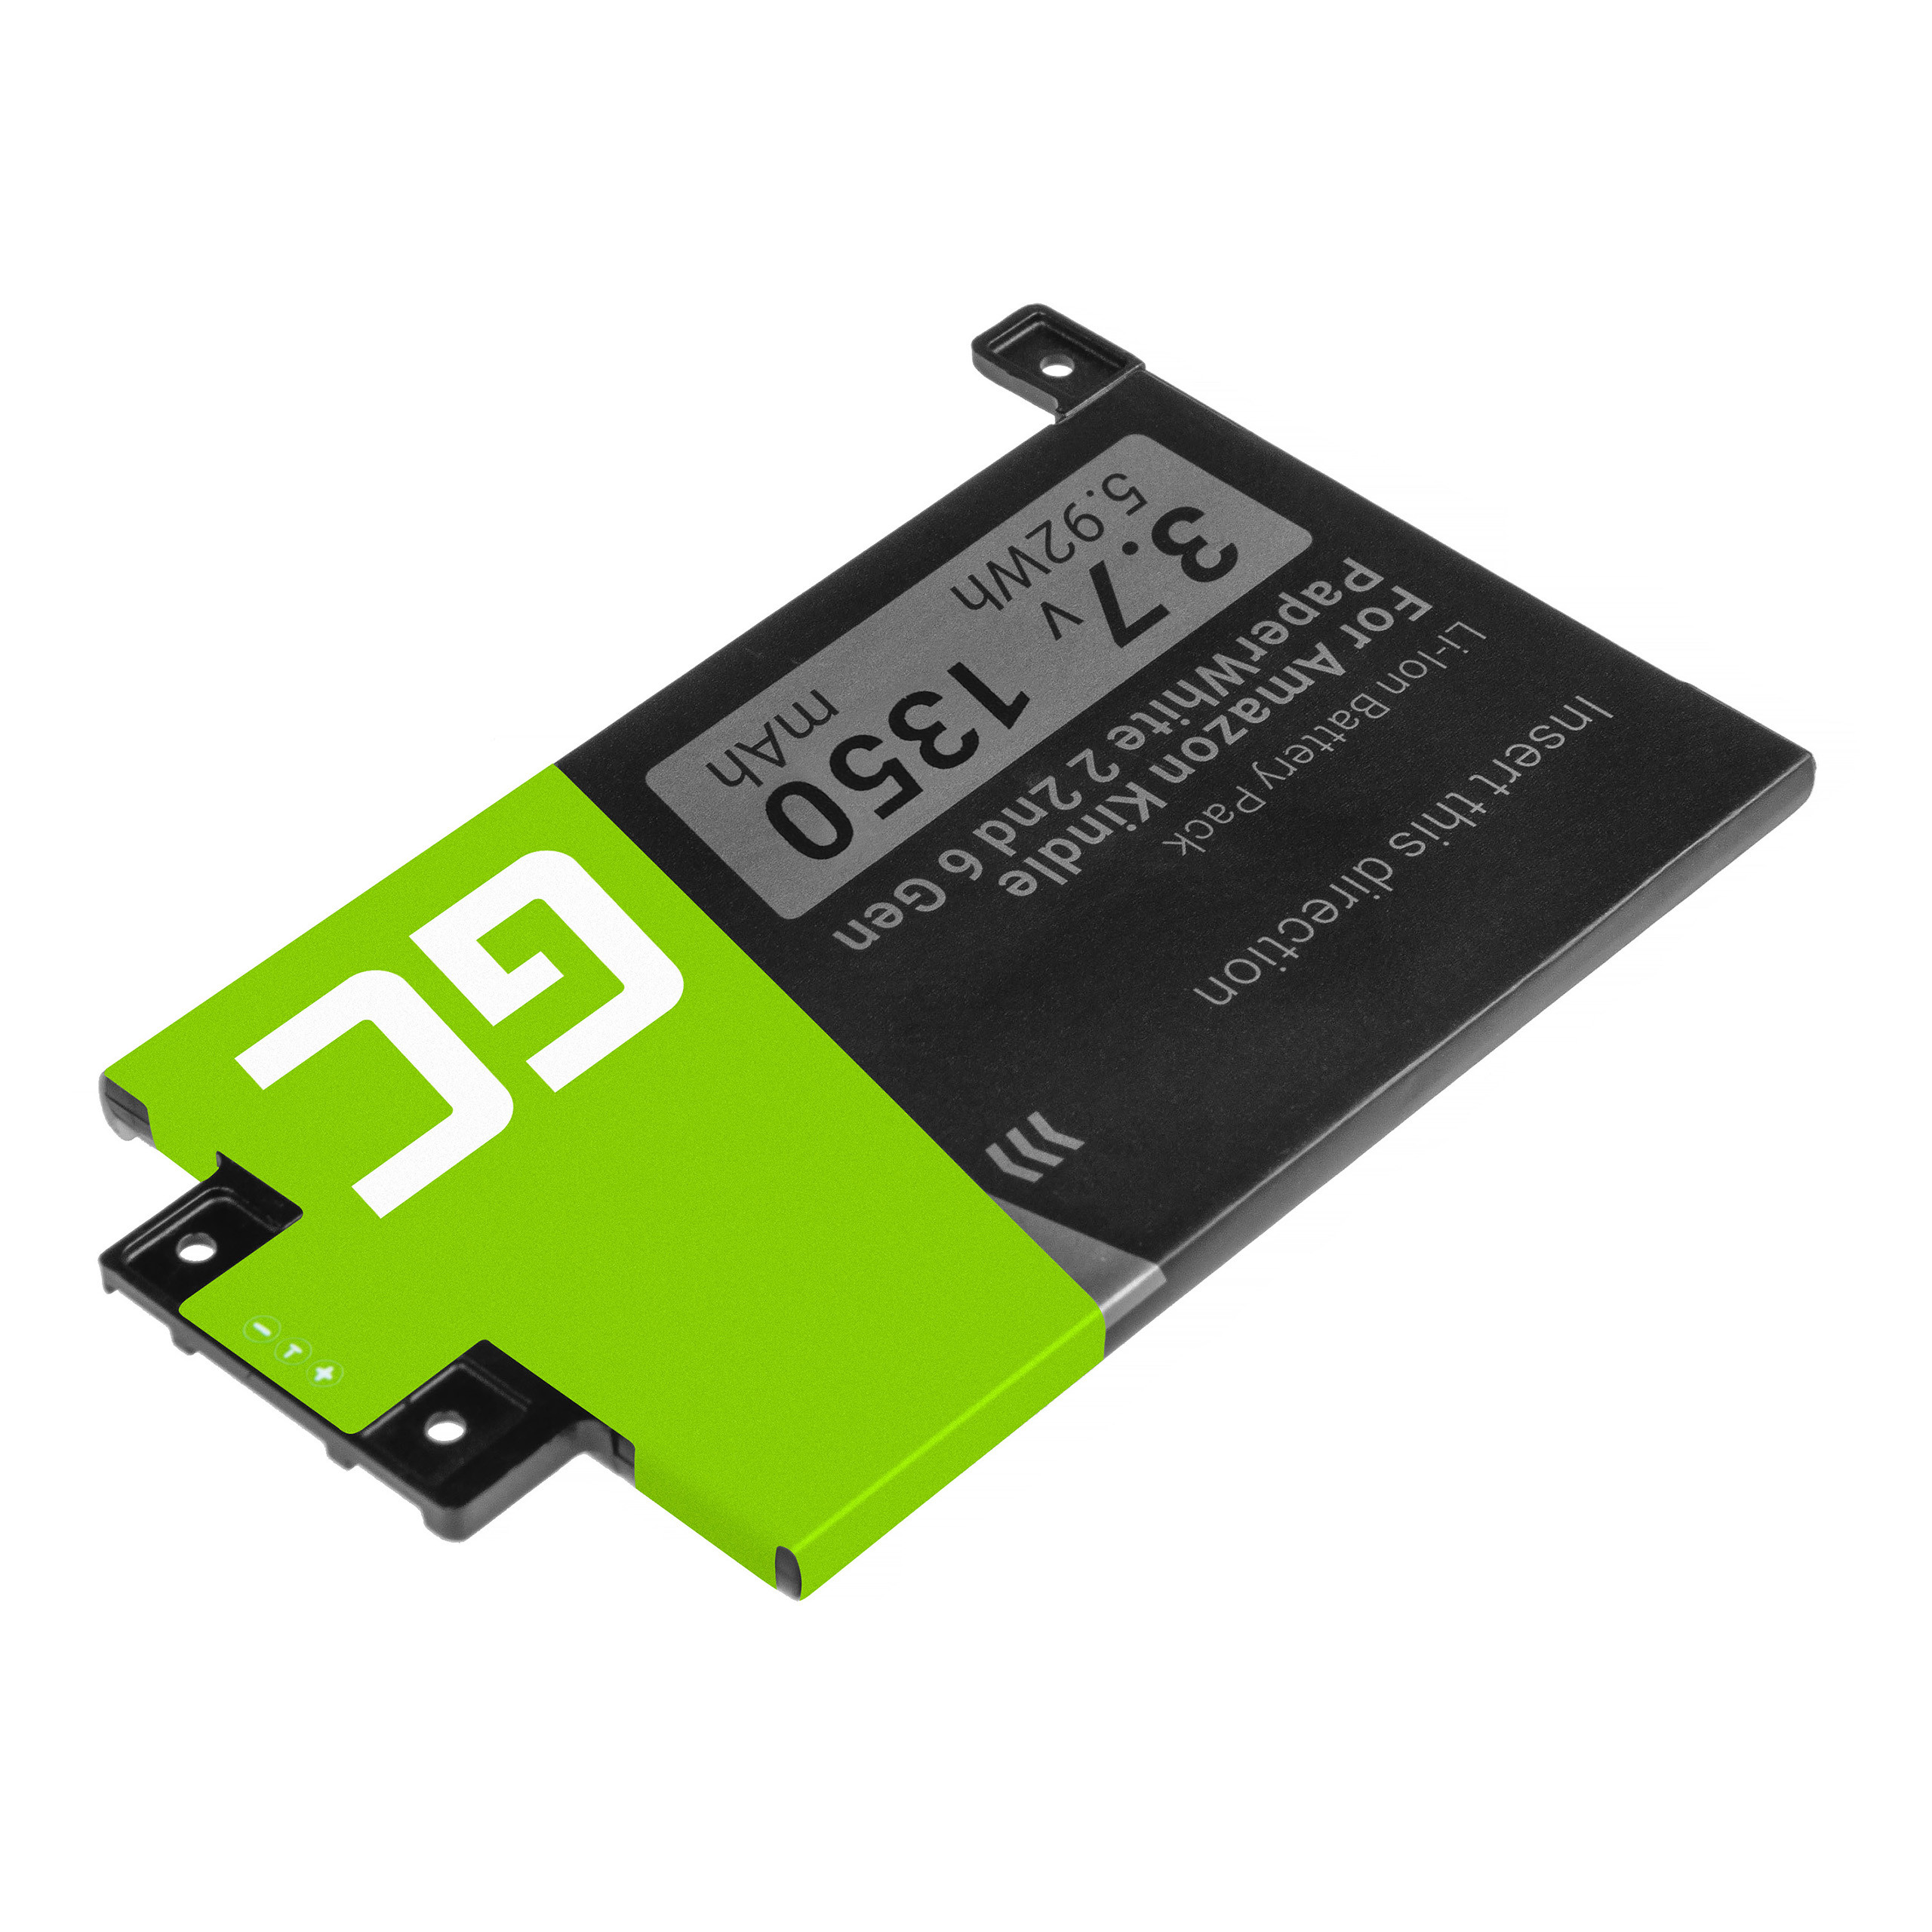 Green Cell 58-000049 Battery for Amazon Kindle Paperwhite II 2013 oraz Amazon Kindle Paperwhite III 2015